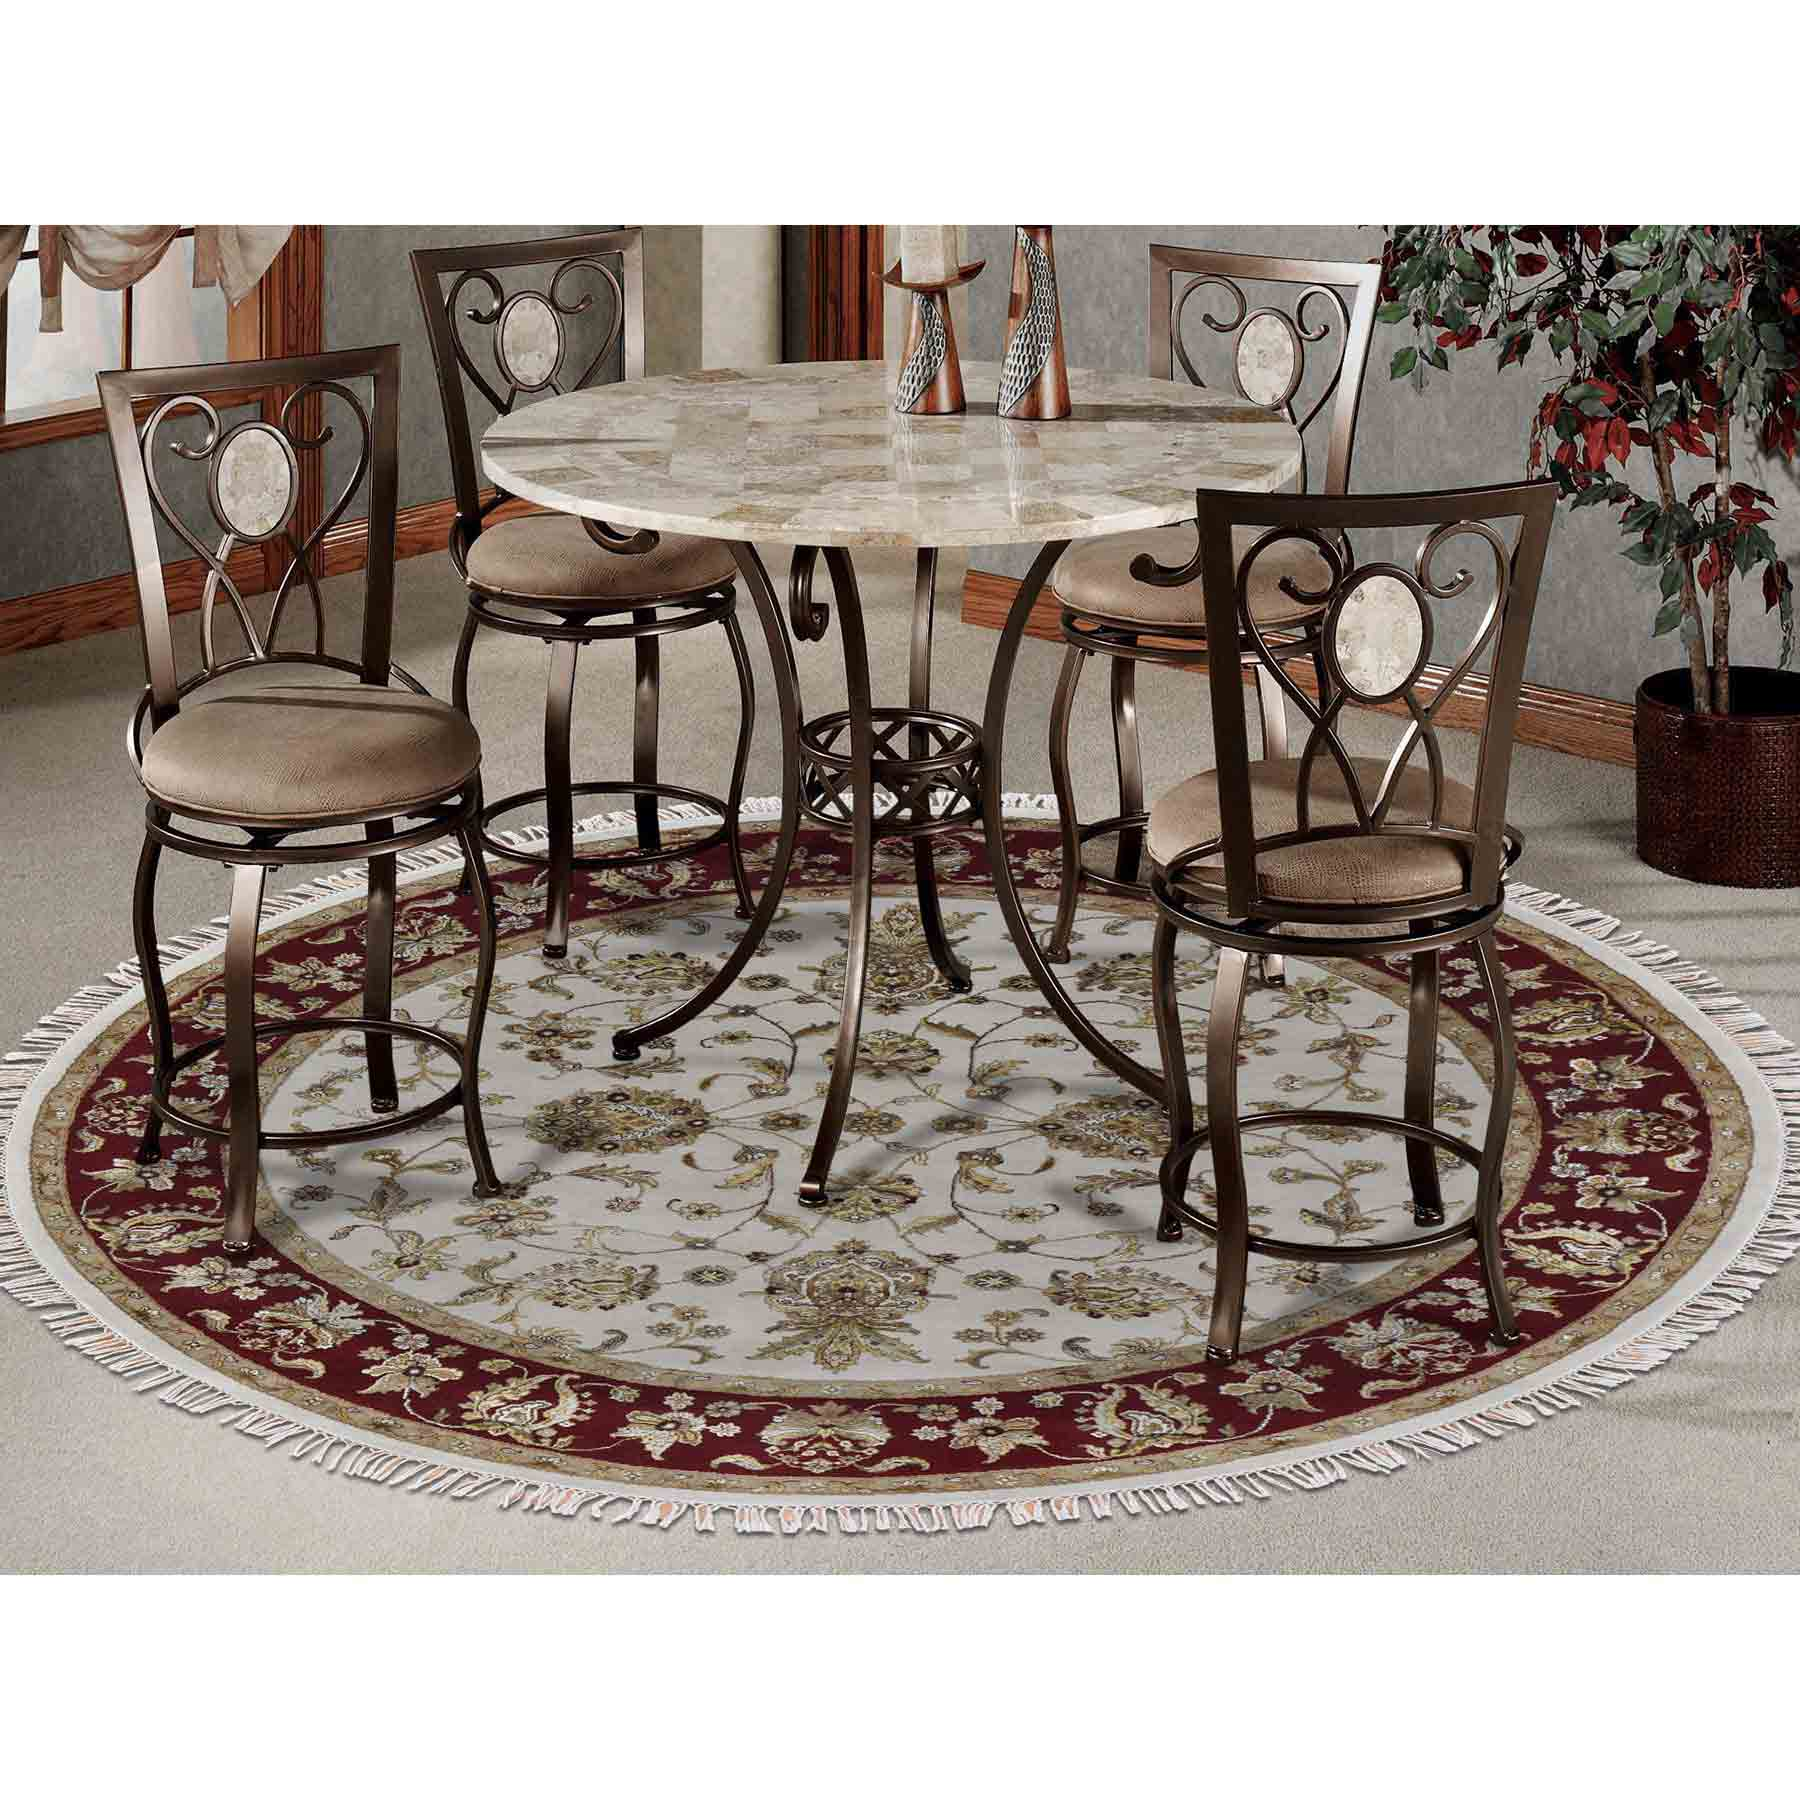 Rajasthan-Hand-Knotted-Rug-232480